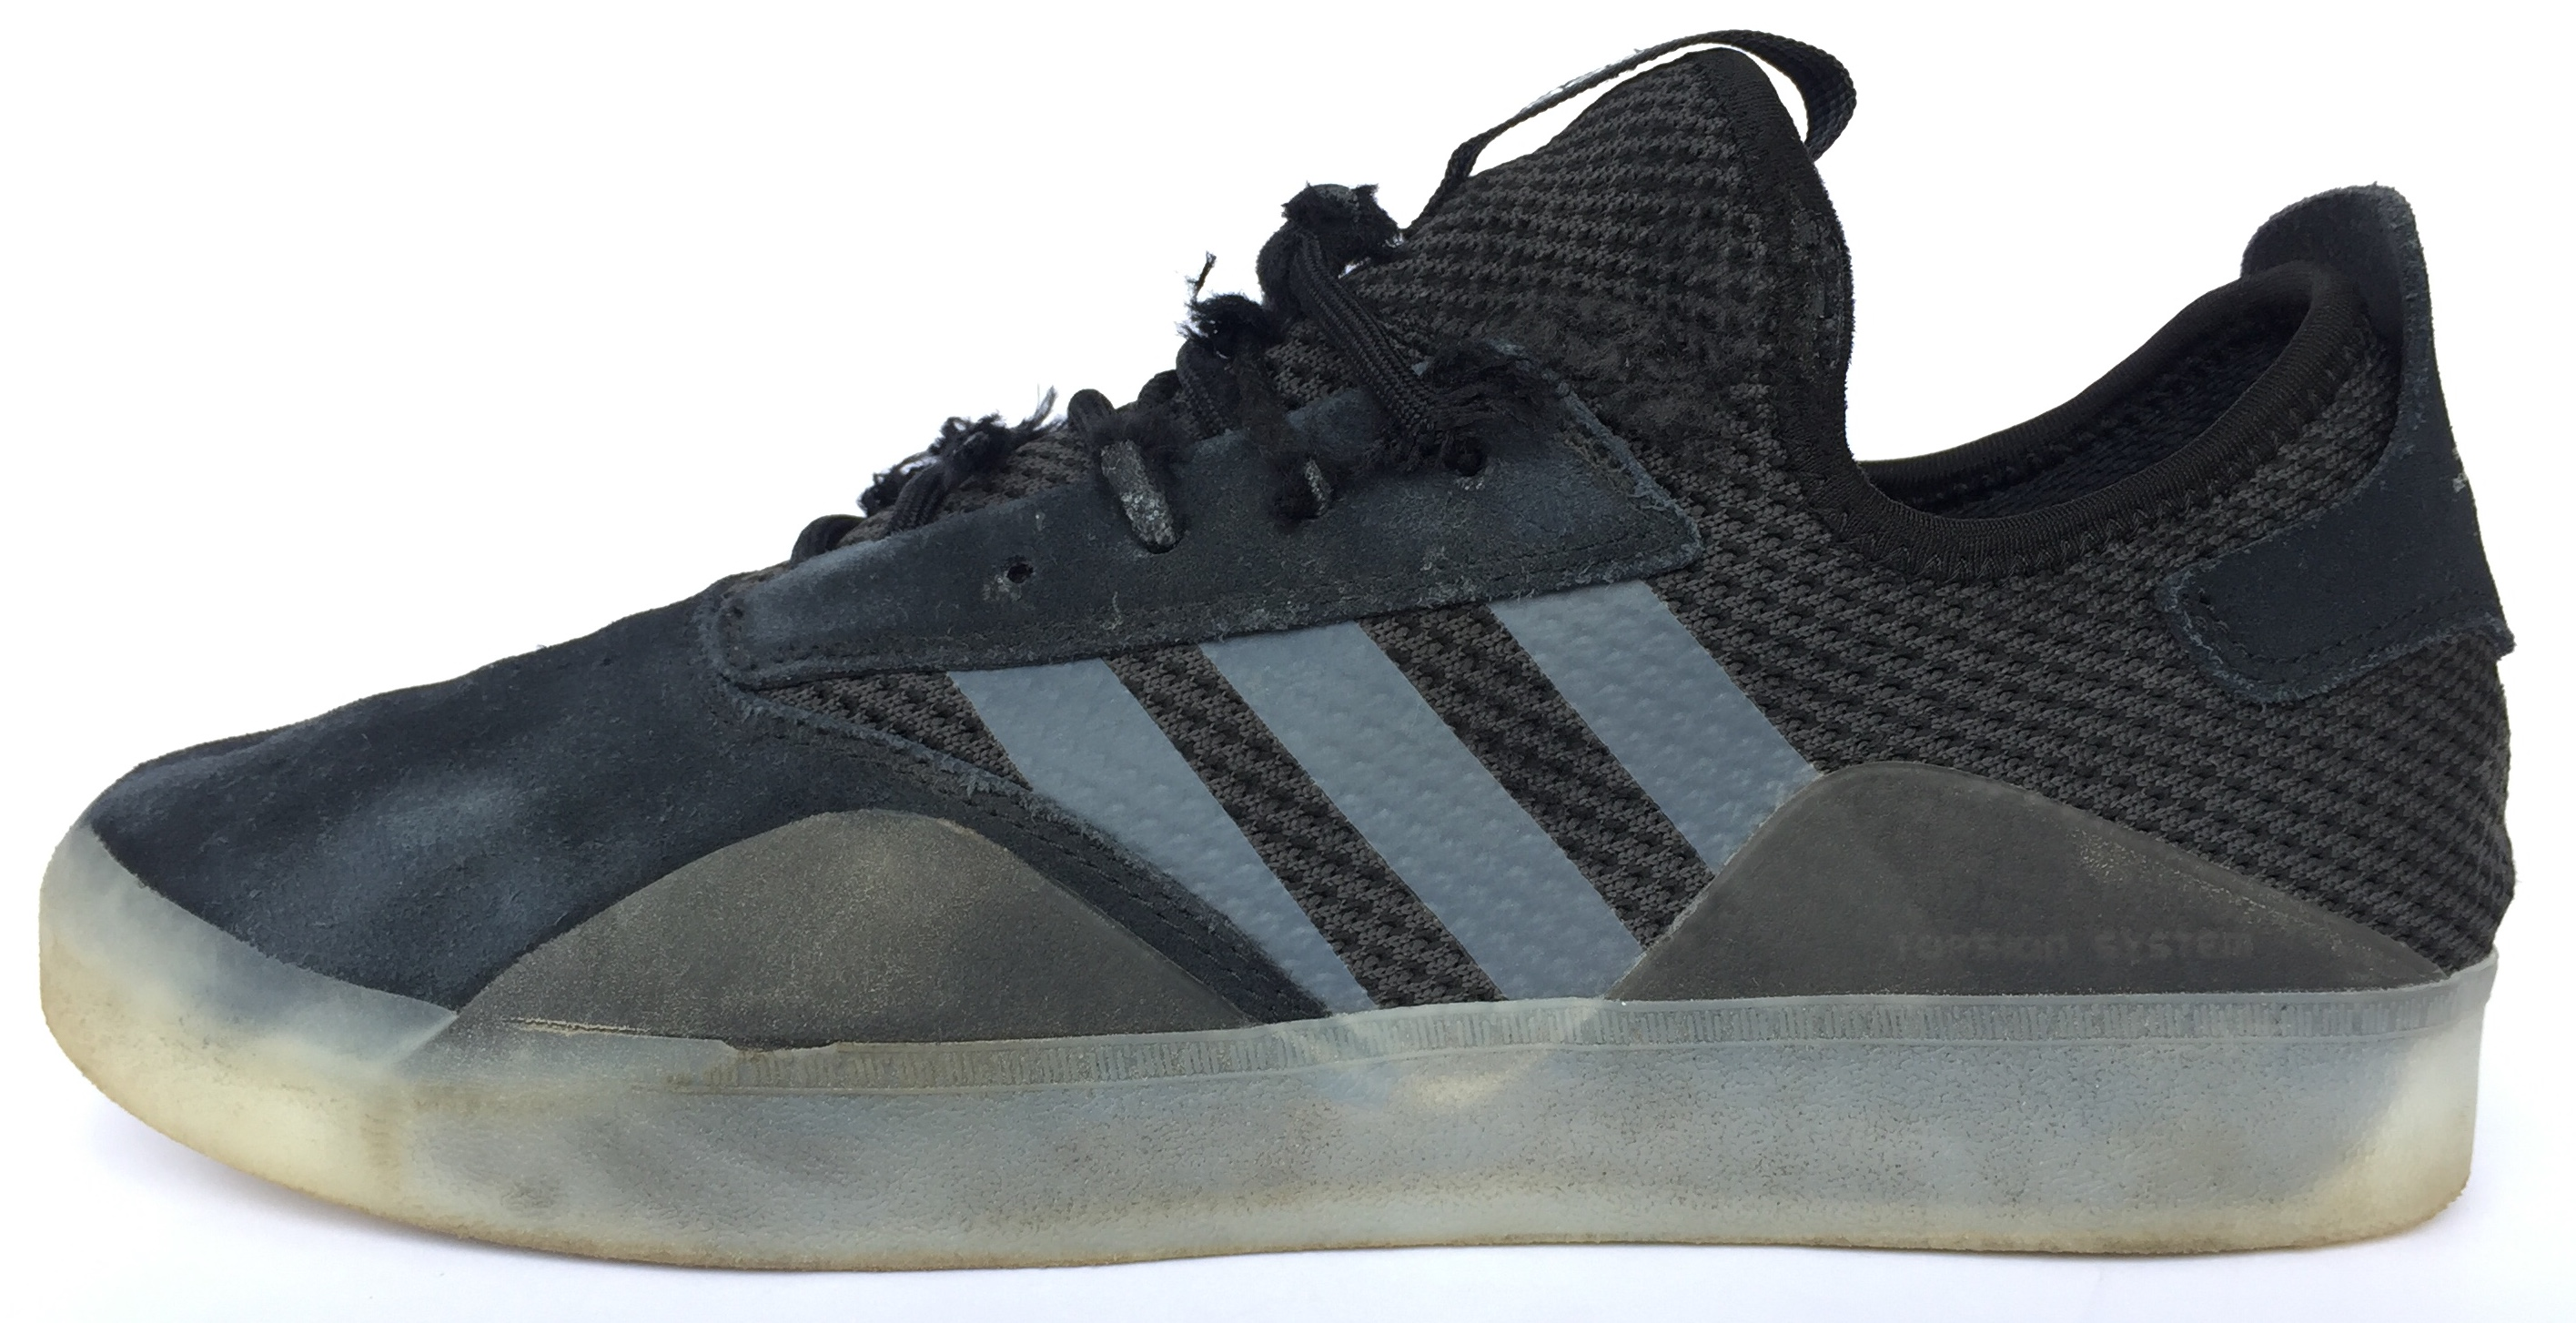 adidas 3ST001 Weartested detailed skate shoe reviews